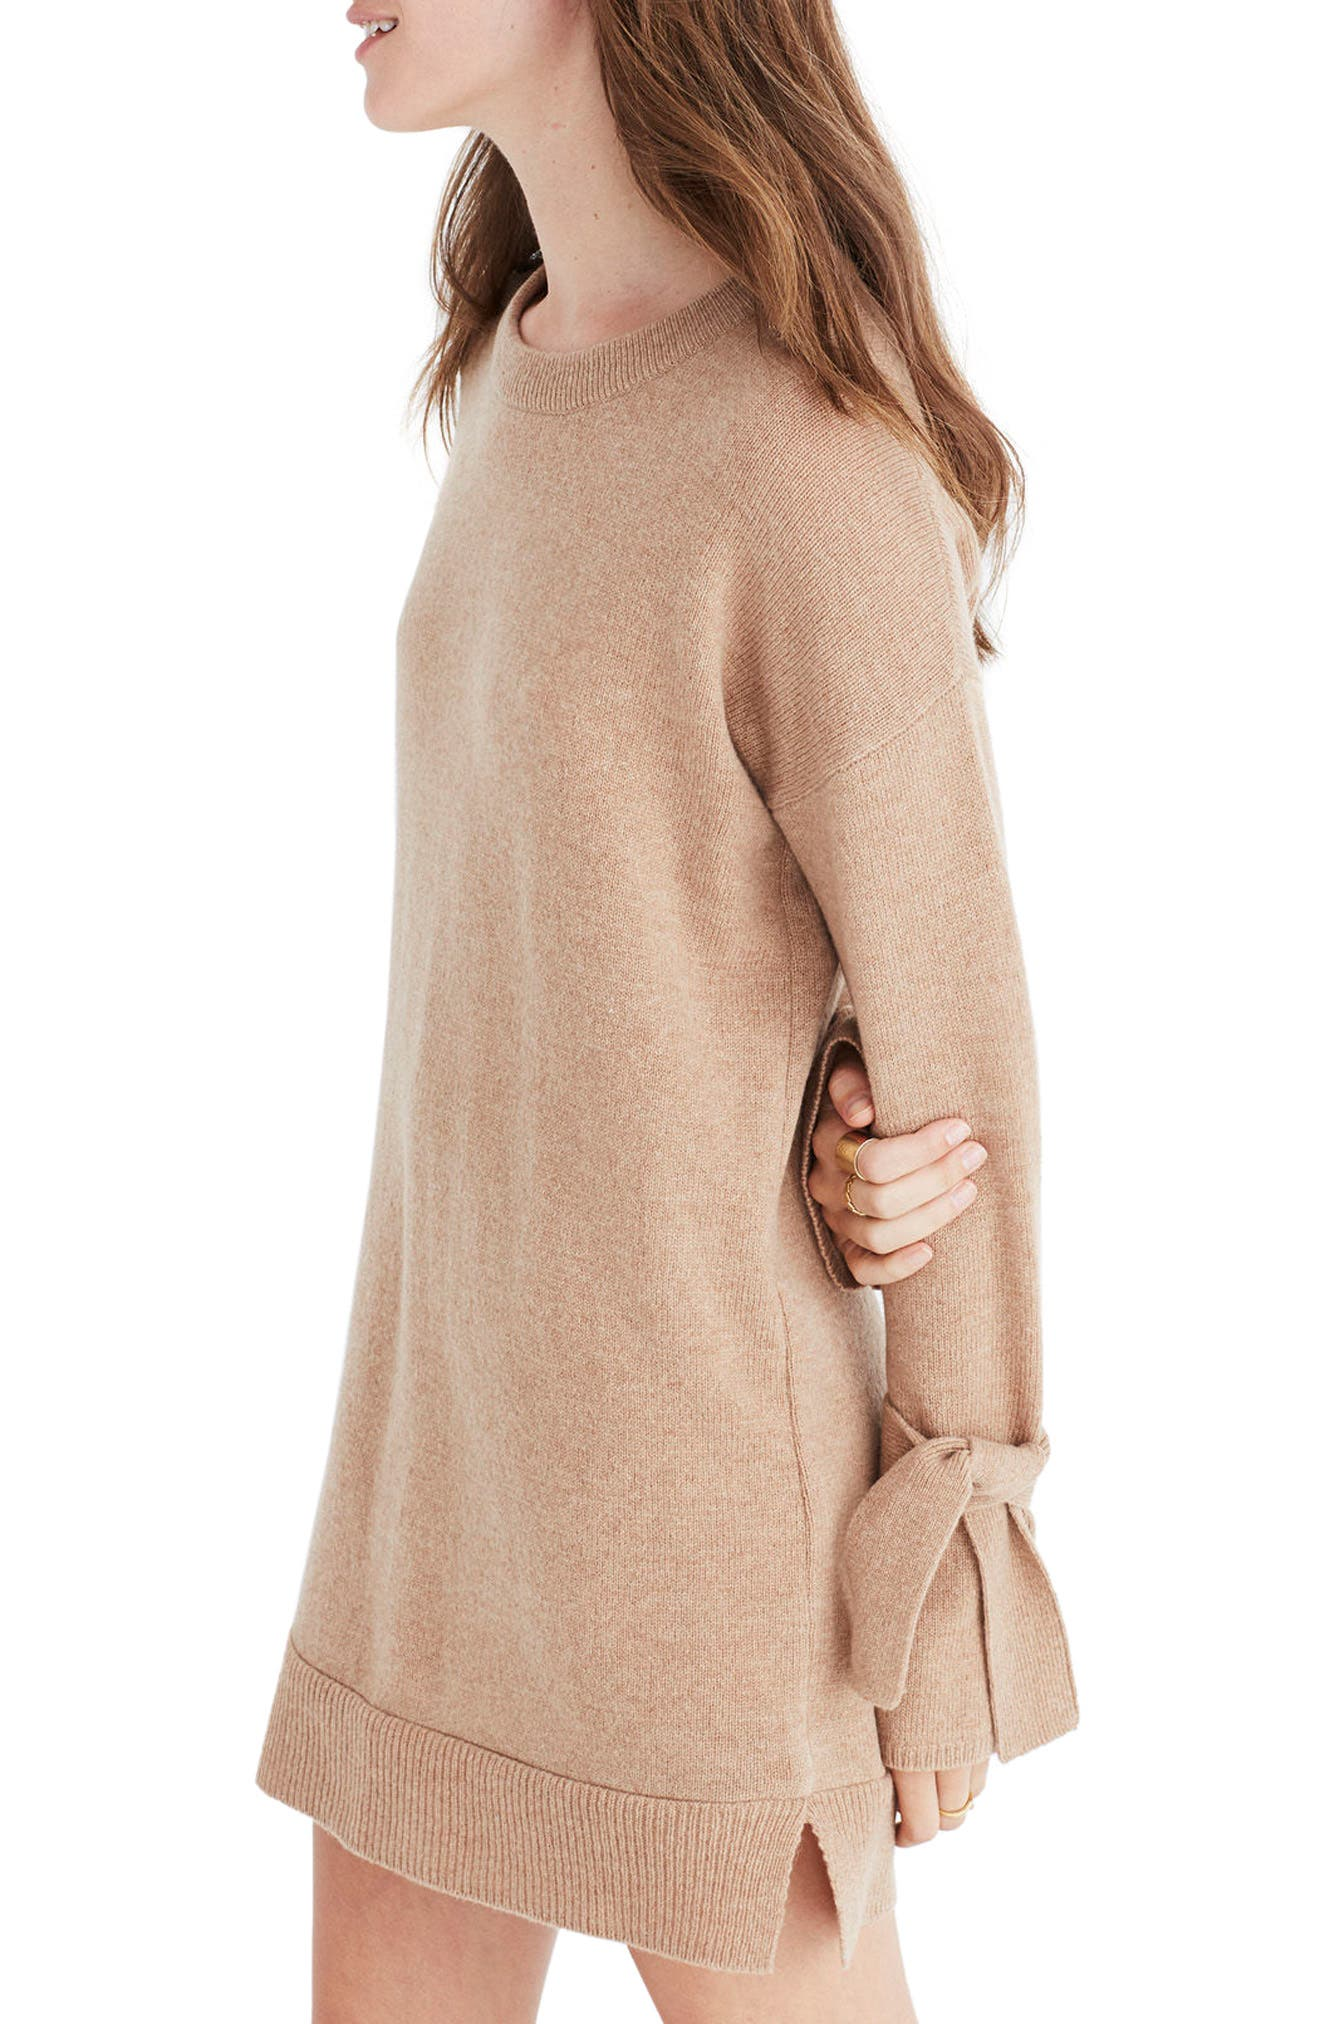 Main Image - Madewell Tie Cuff Sweater Dress